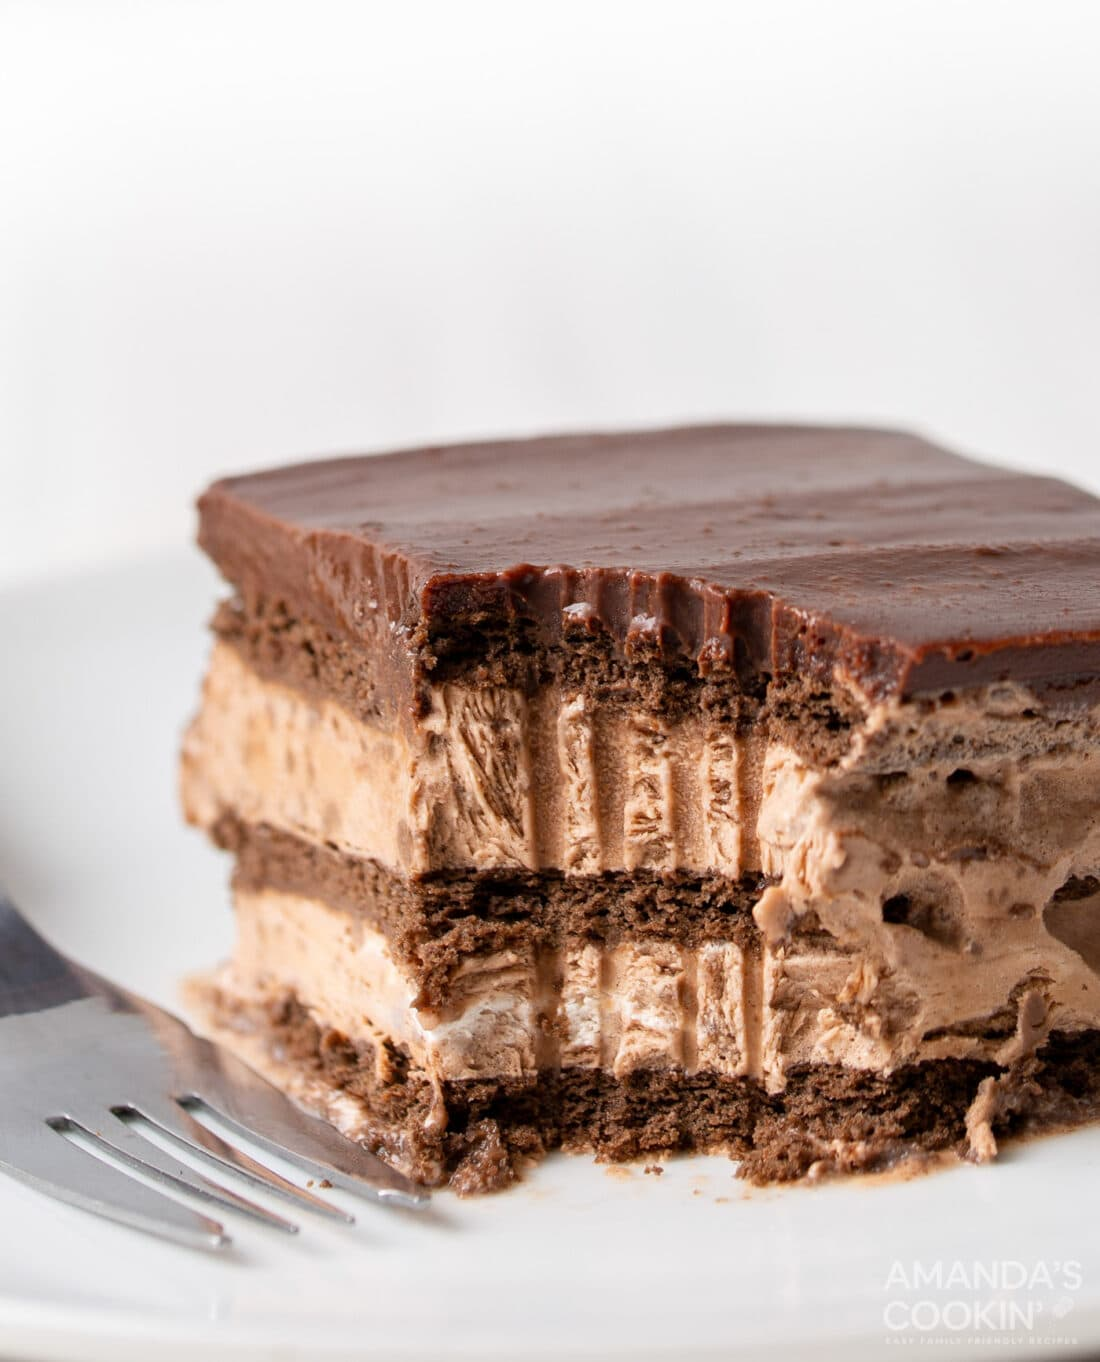 Chocolate Icebox Cake with a fork full removed